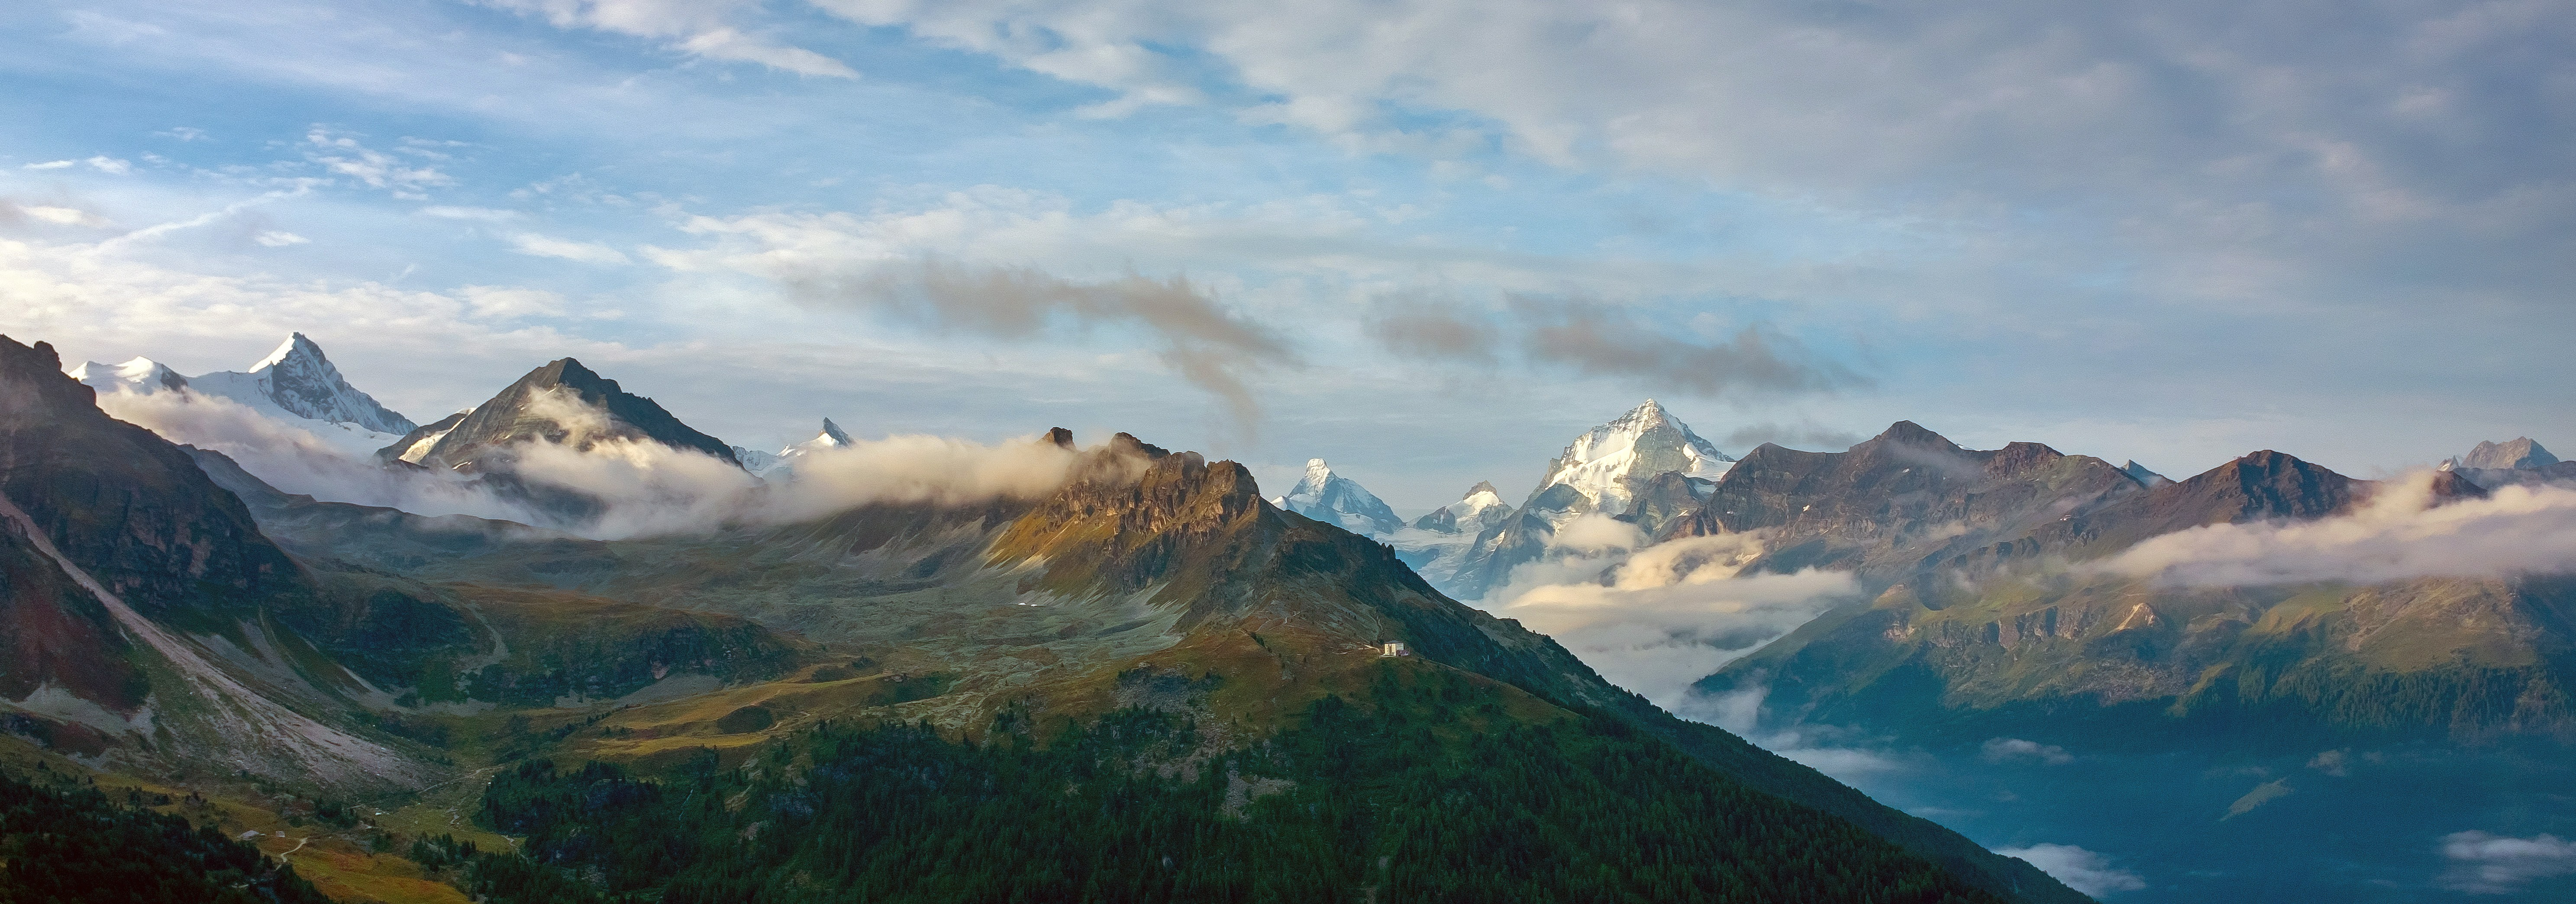 View-from-Cabane-Bella-Tola